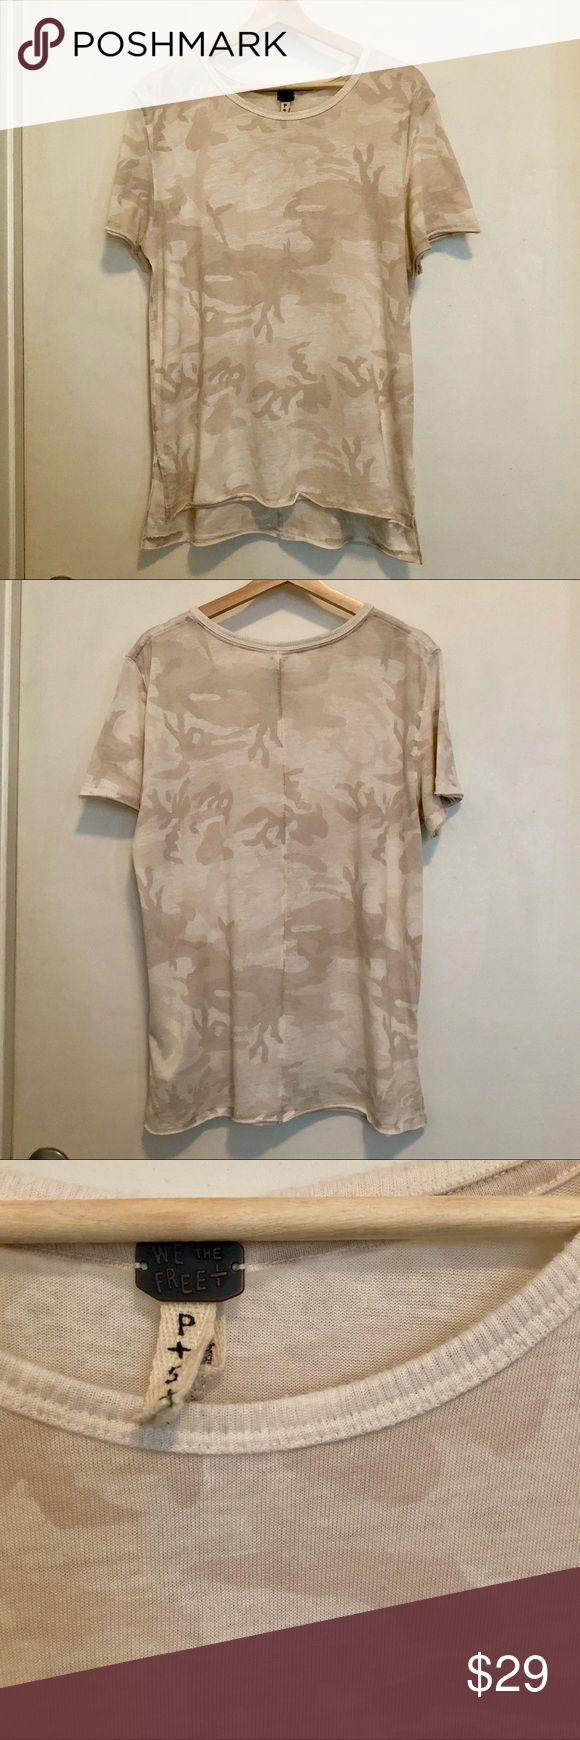 Free People Neutral Camo Tee Camo is the new white staple shirt! This great neutral camo tee is perfect paired with jeans or tucked in to a pencil skirt. Only worn a few times and in perfect condition! Free People Tops Tees - Short Sleeve